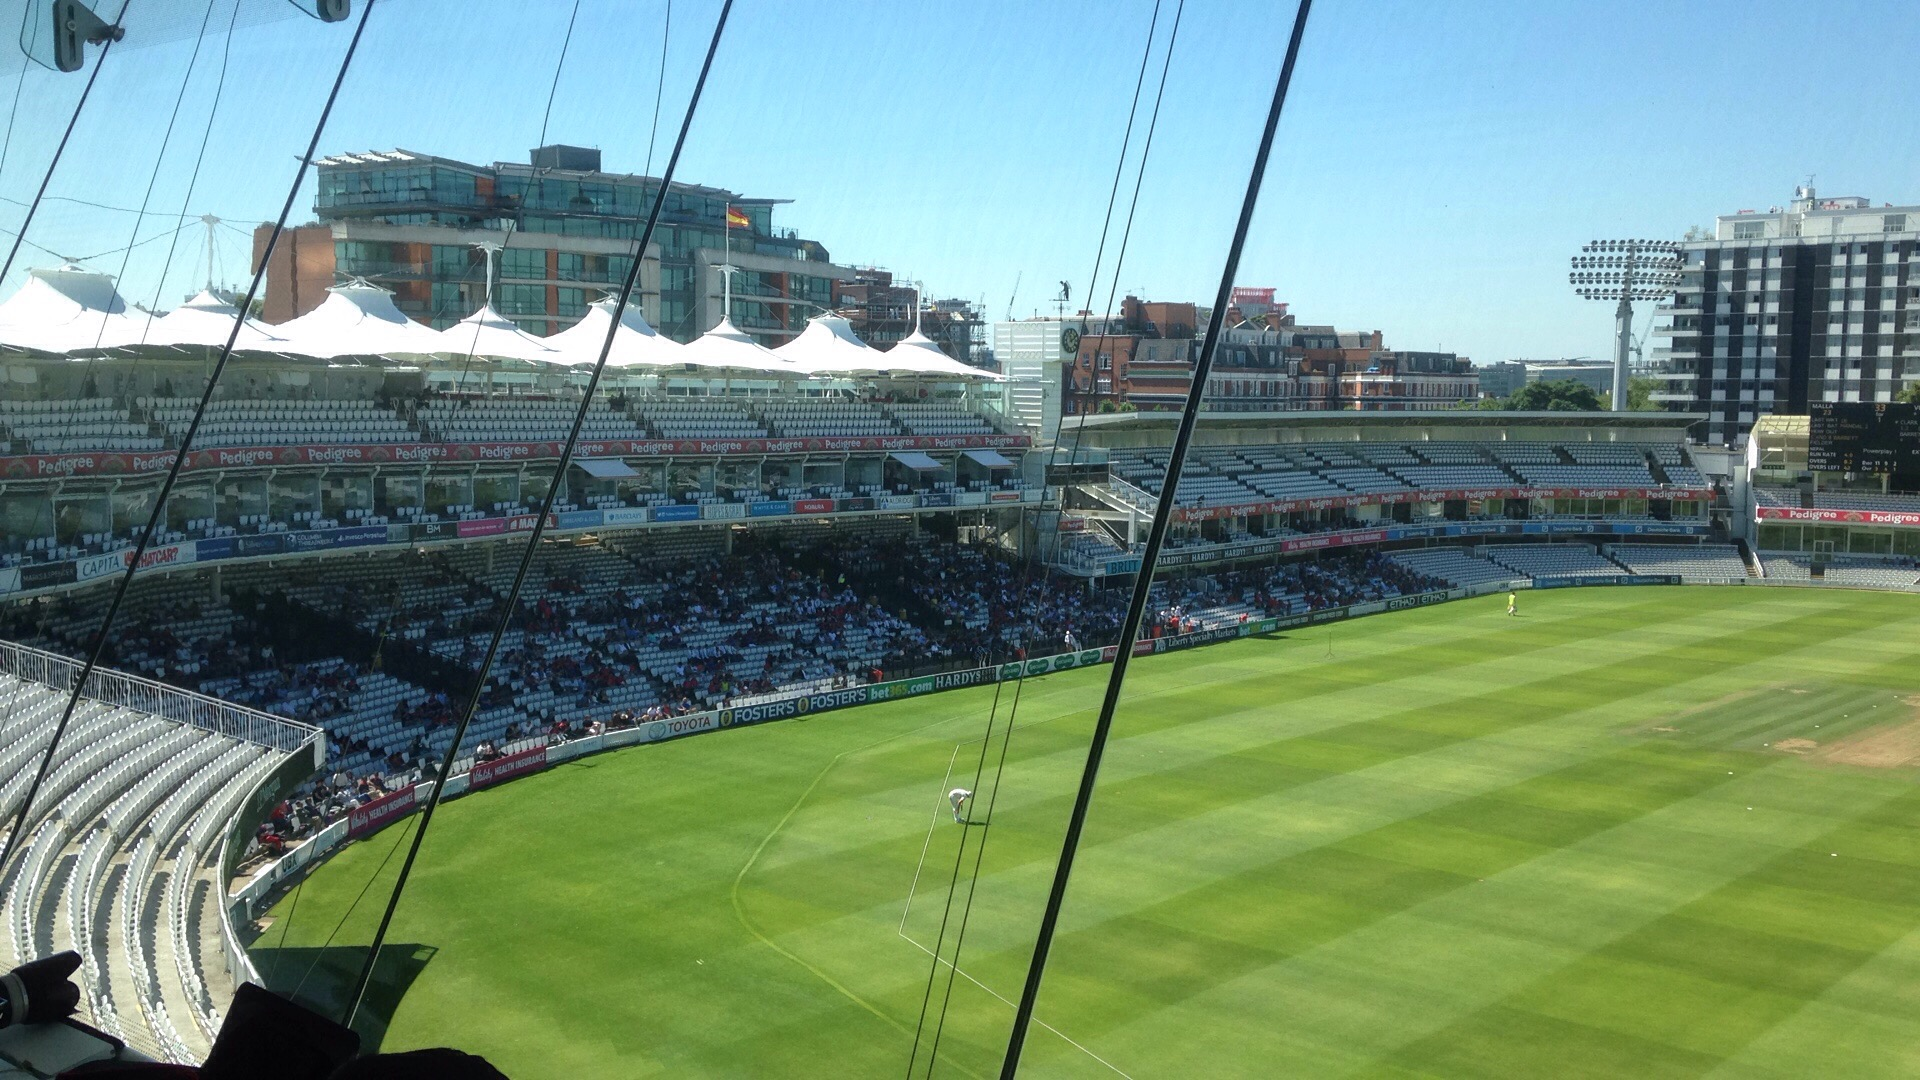 The view of the Nepali fans from the Media Centre at Lord's.